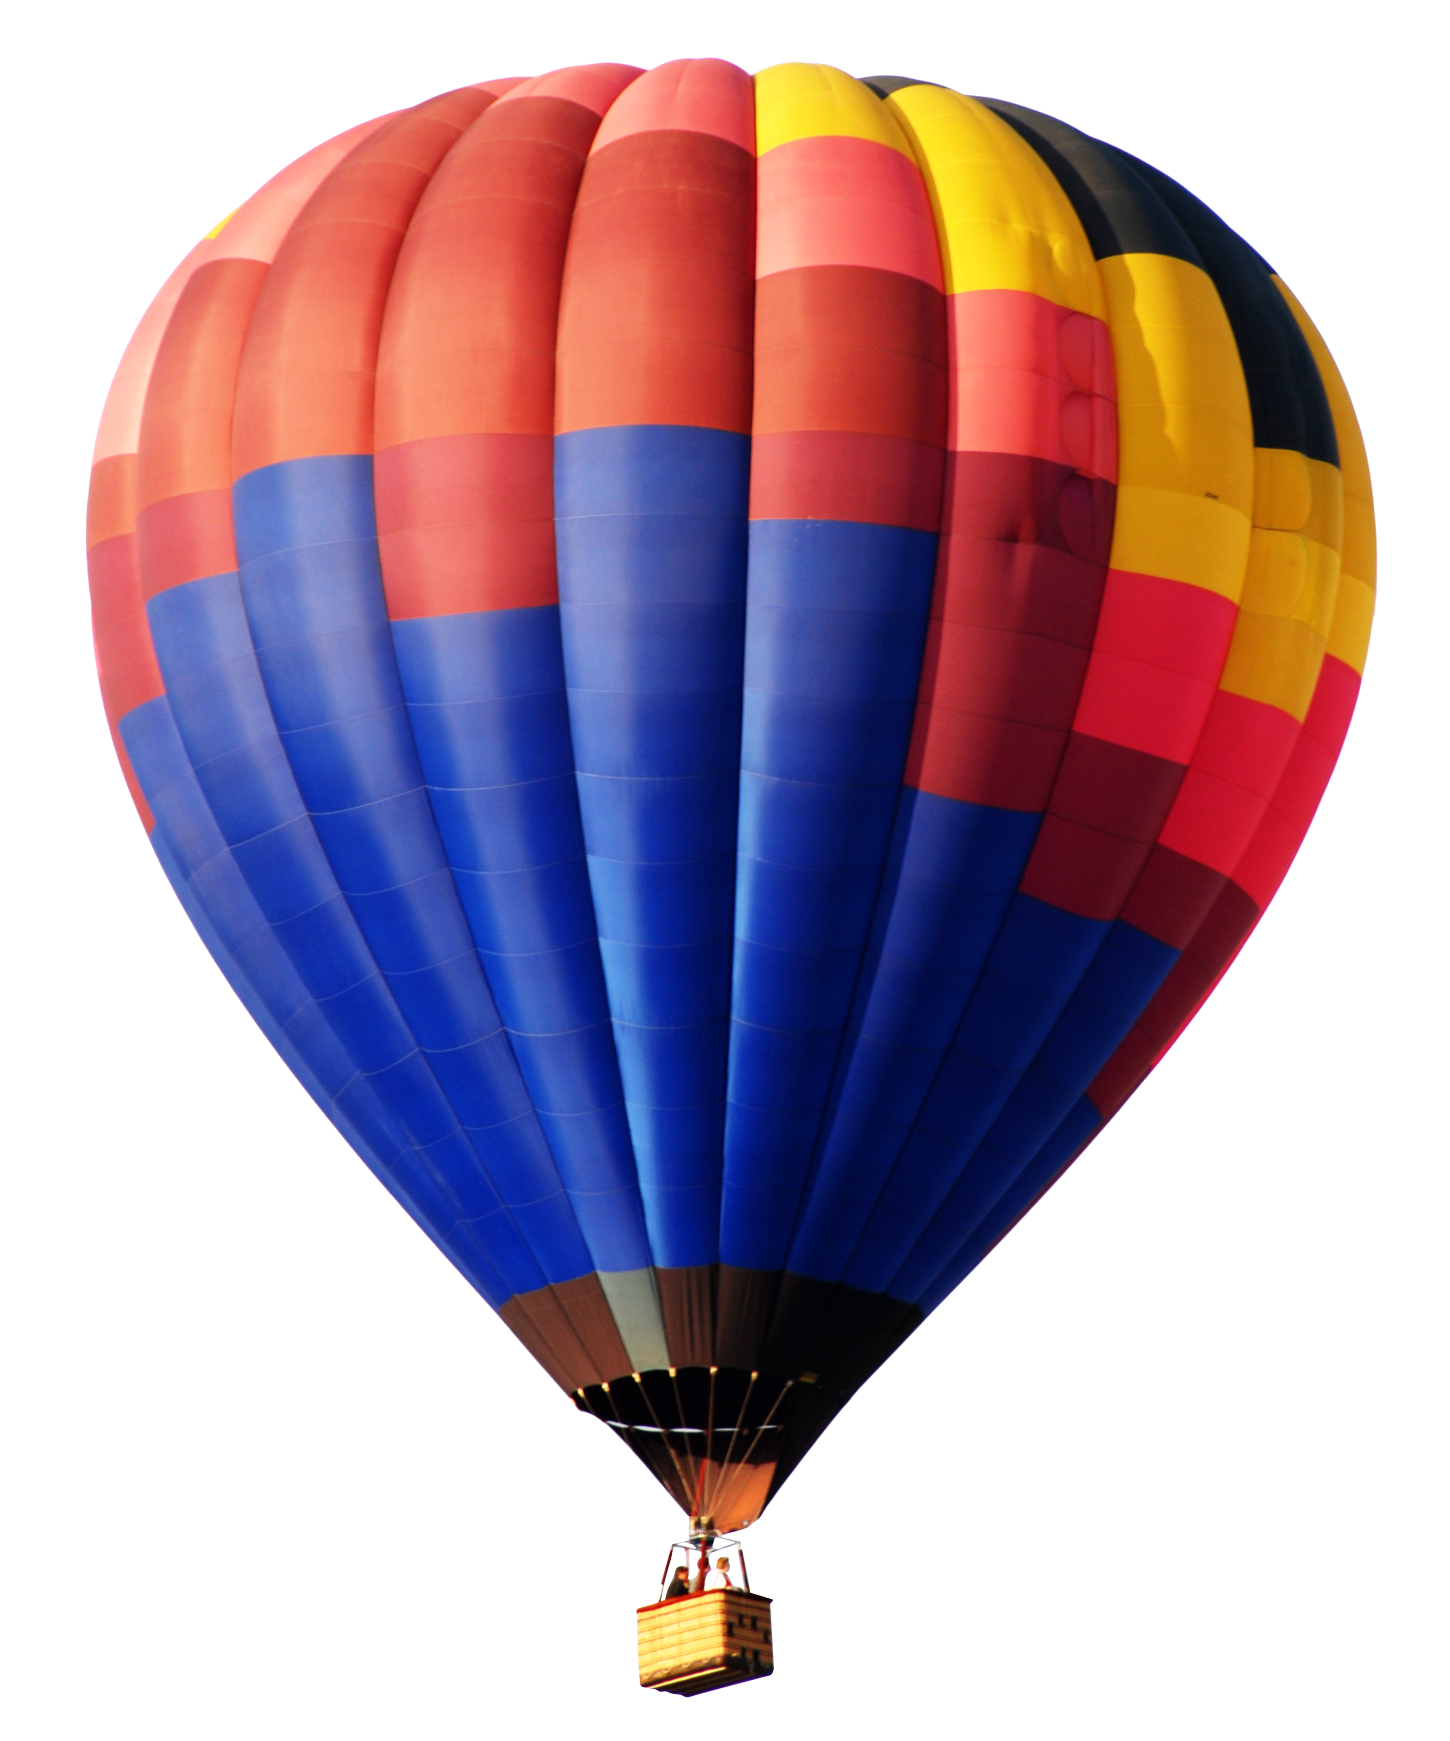 Image purepng free cc. Hot air balloon png transparent background clipart royalty free stock